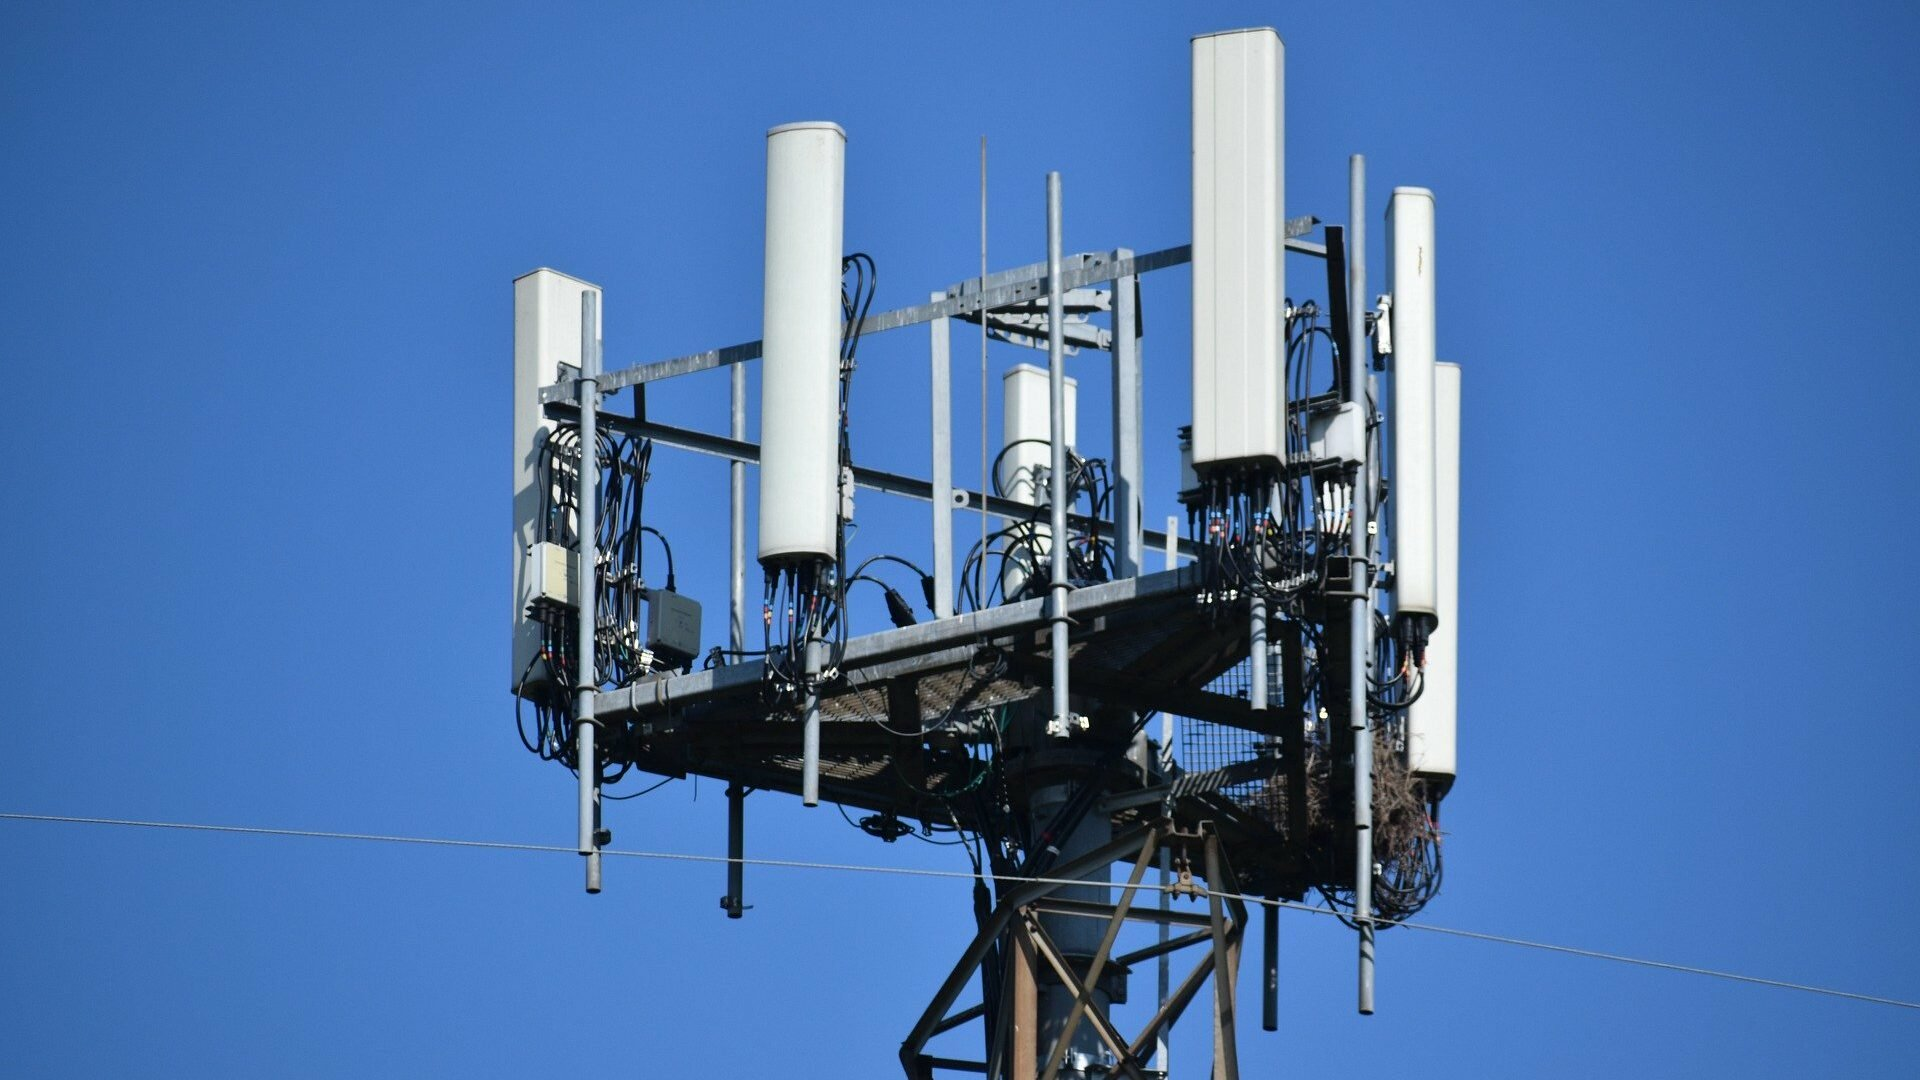 cell tower 5390644 1920 e1599585854729